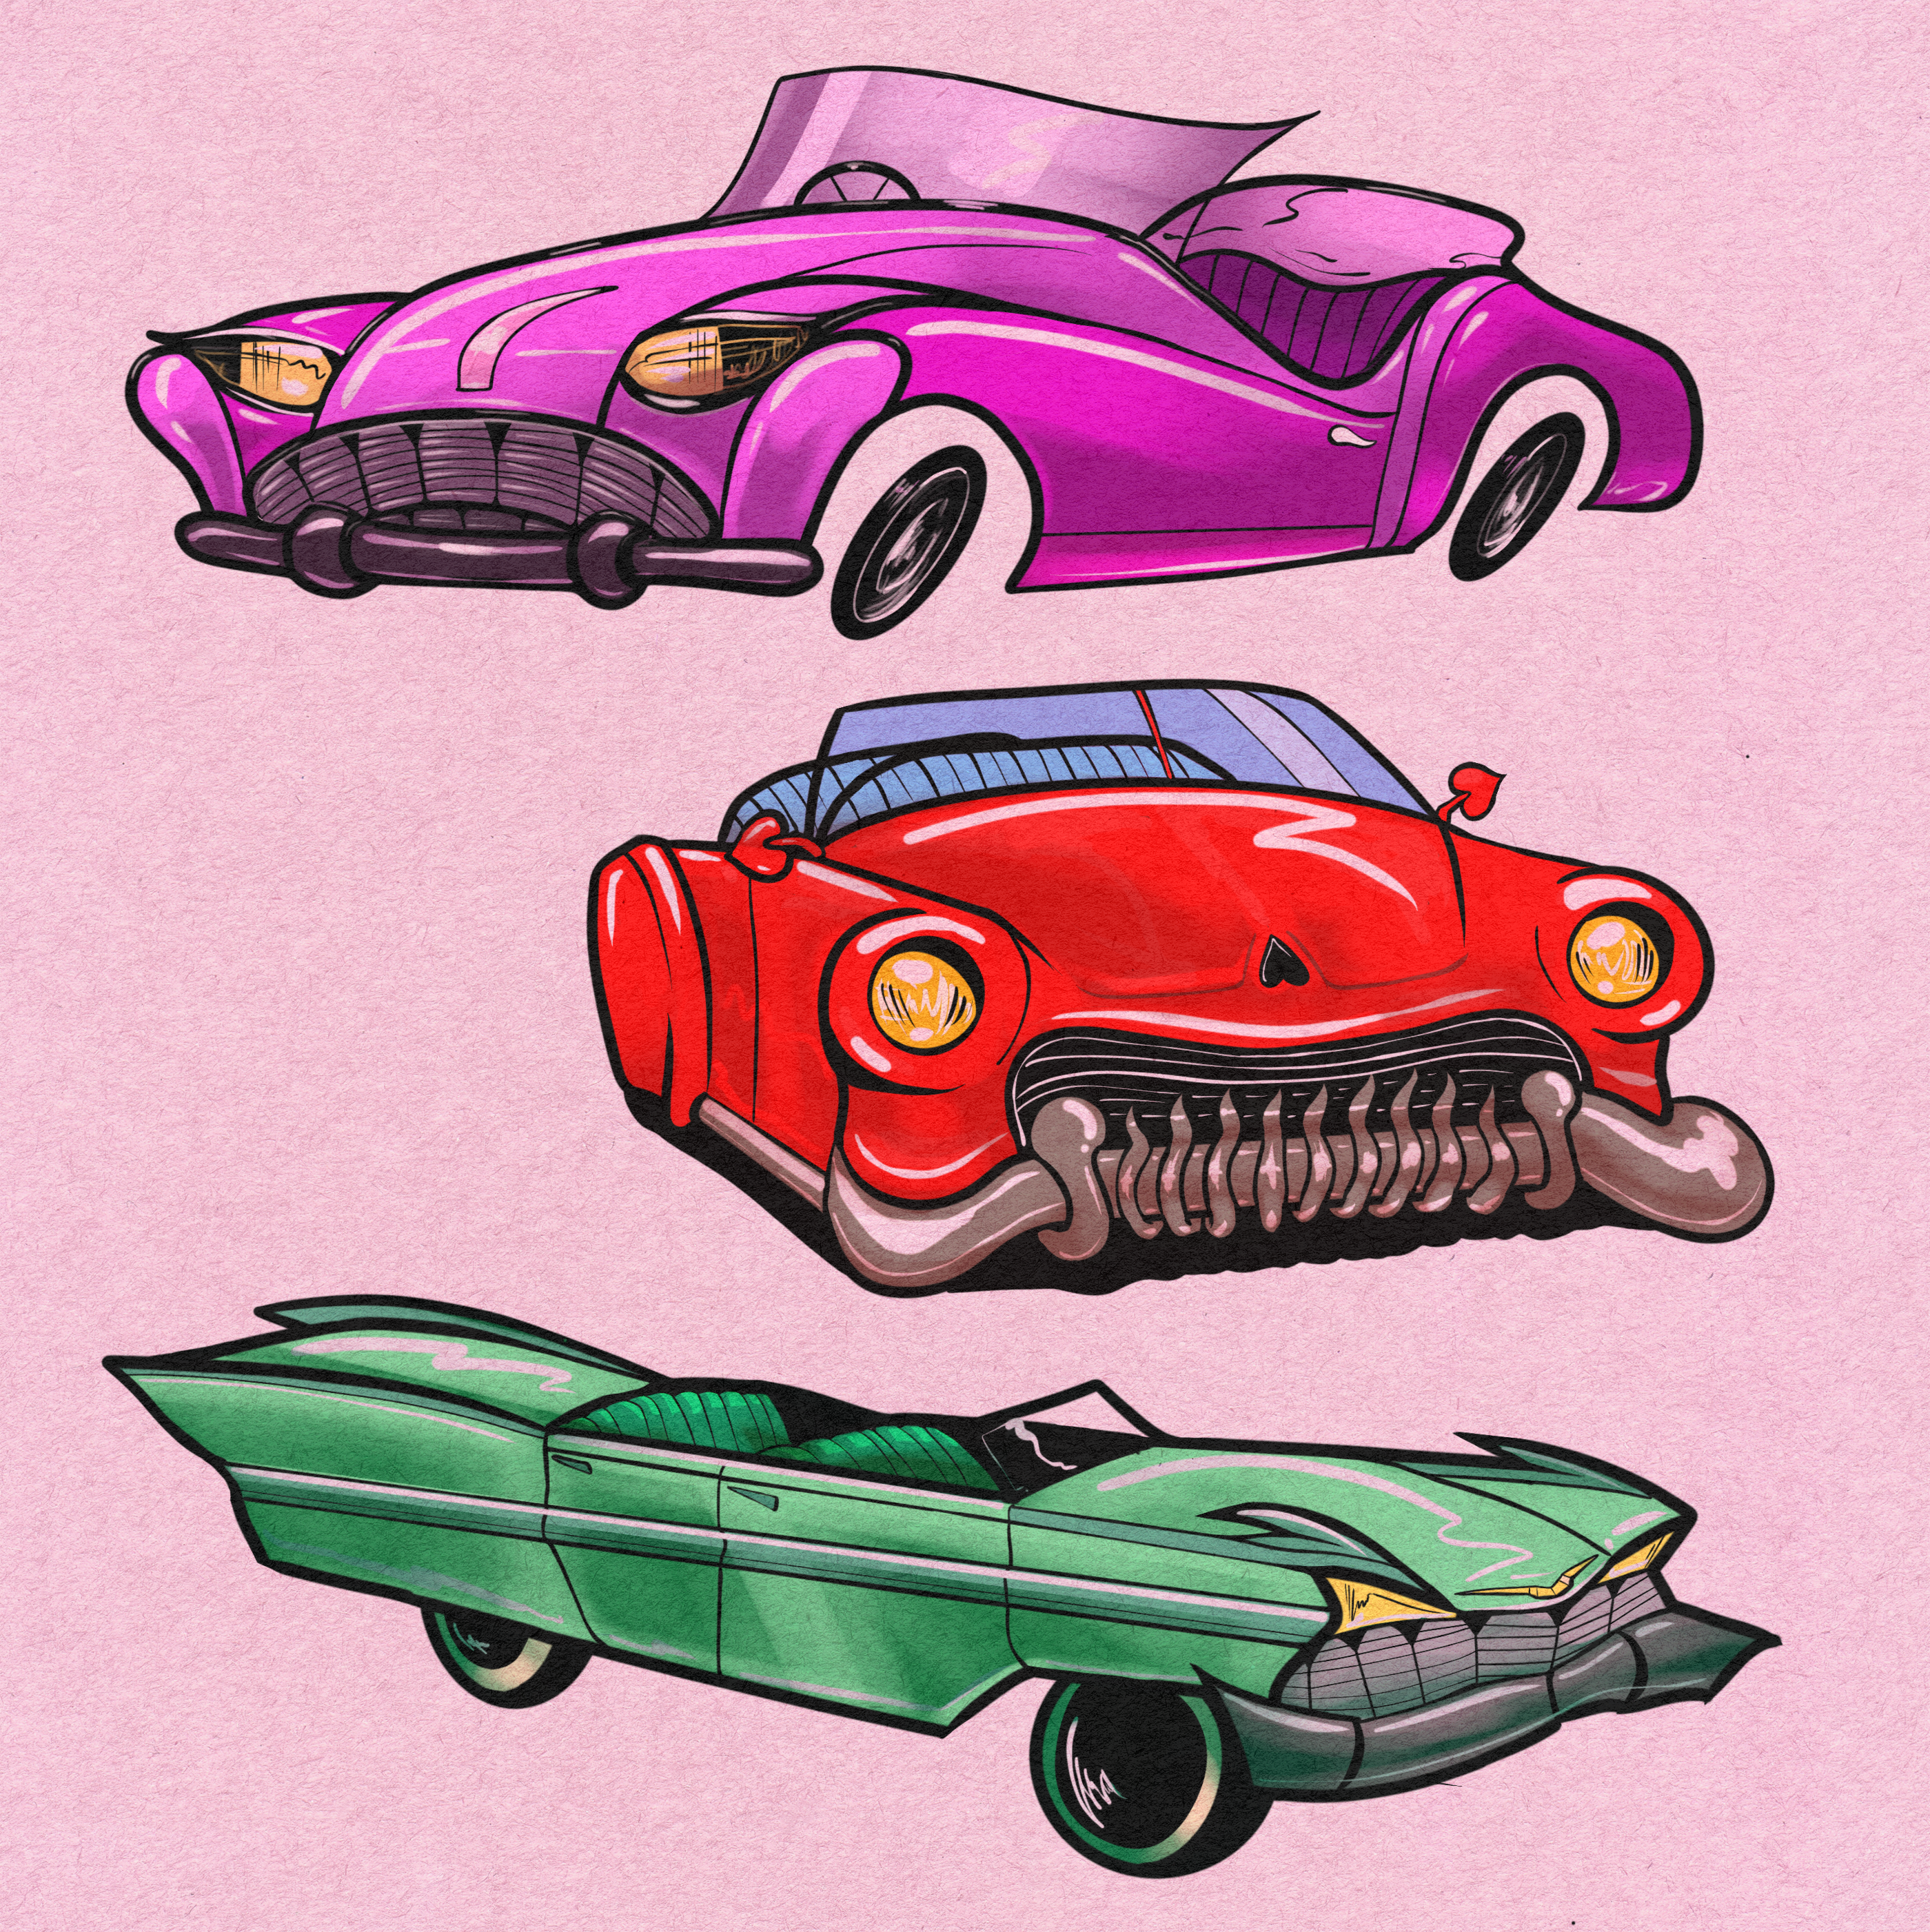 The Divil's Vehicles